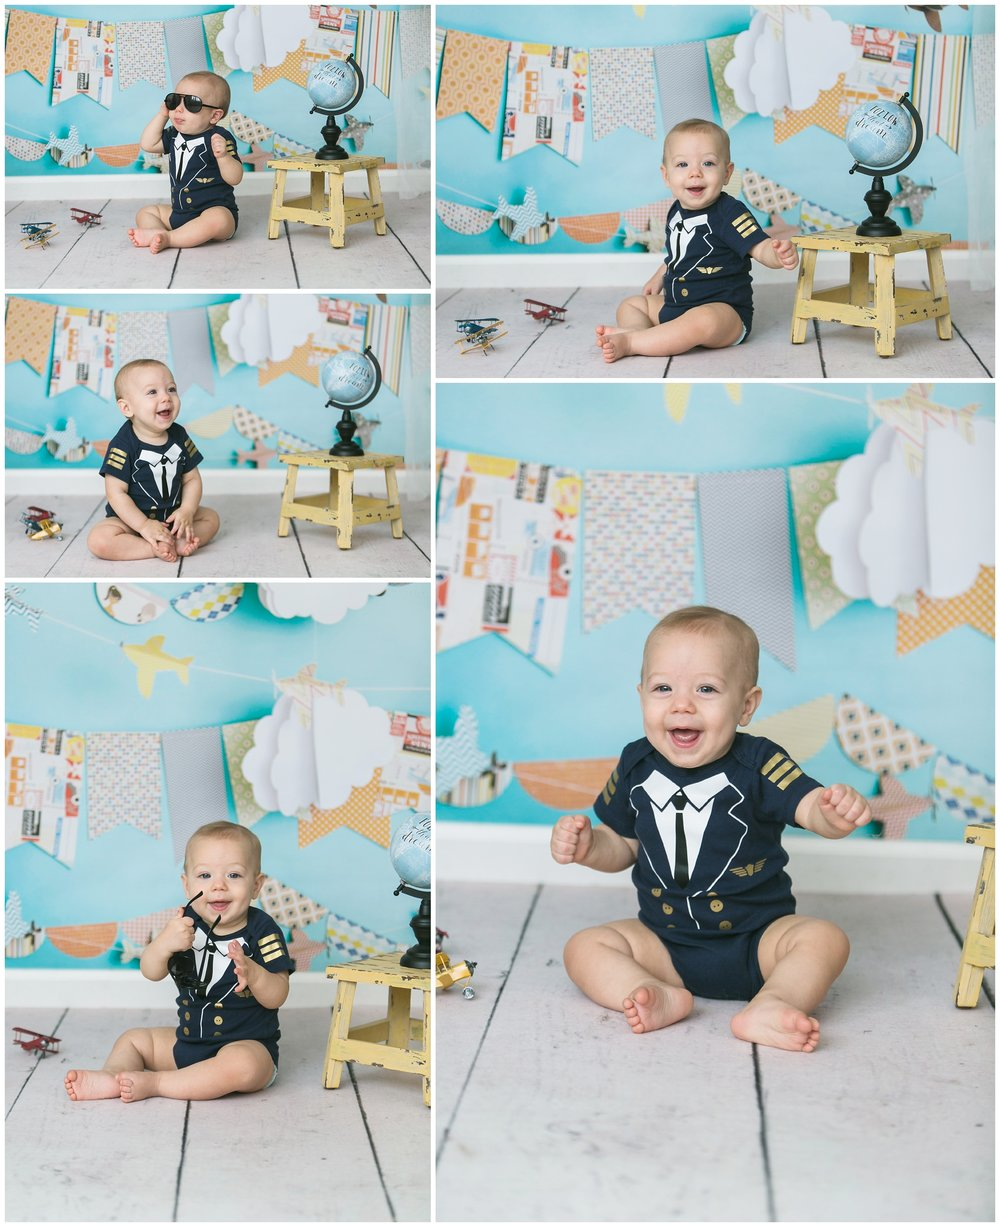 colorful-aviator-themed-portrait-session-8-month-sitting-boy-carrie-vines